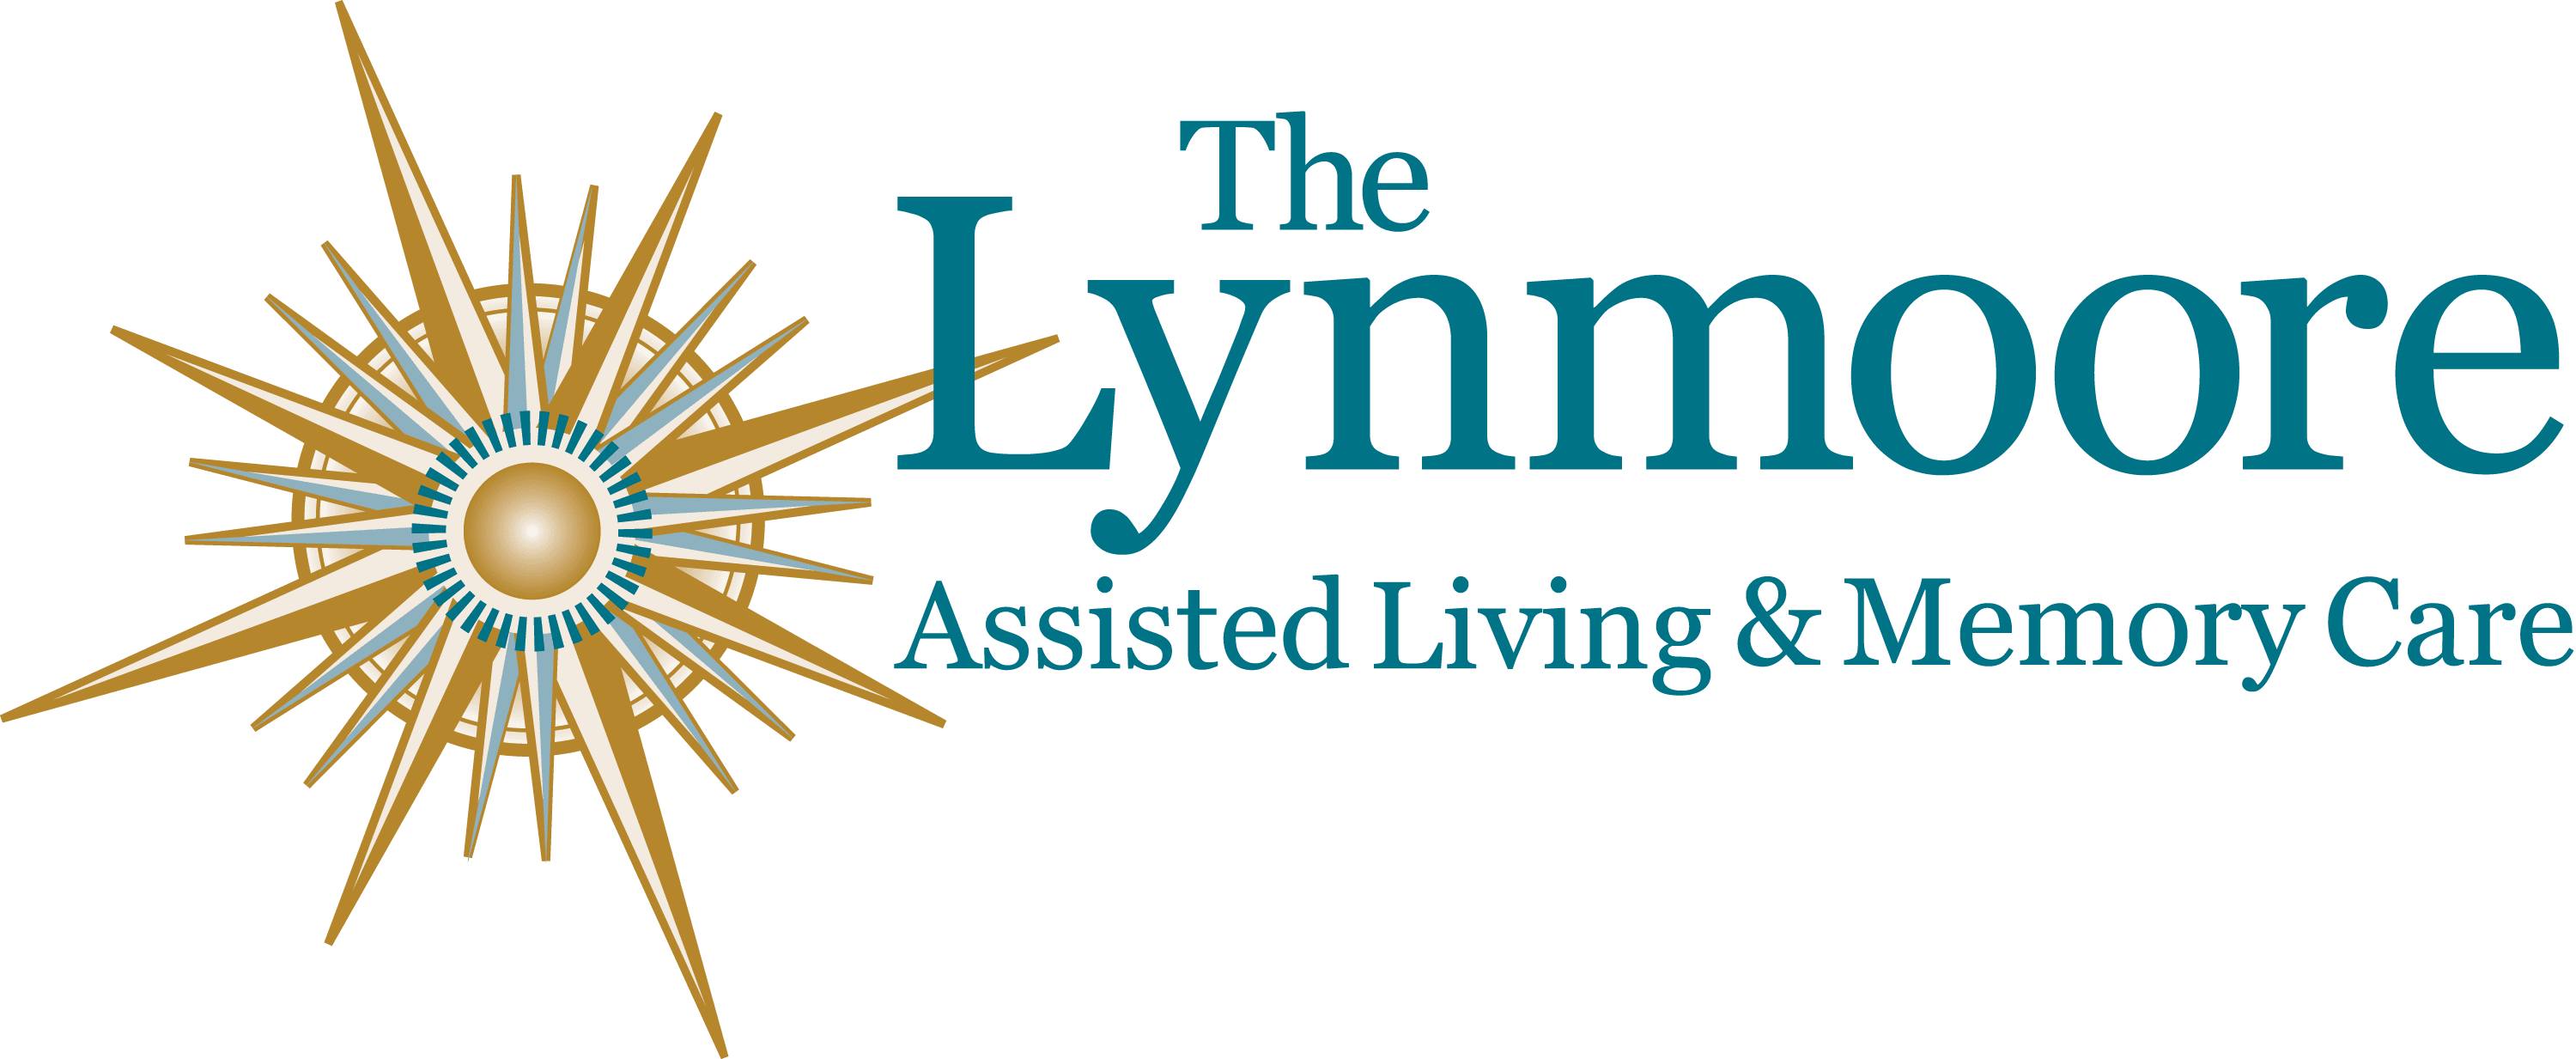 The Lynmoore at Lawnwood Assisted Living and Memory Care